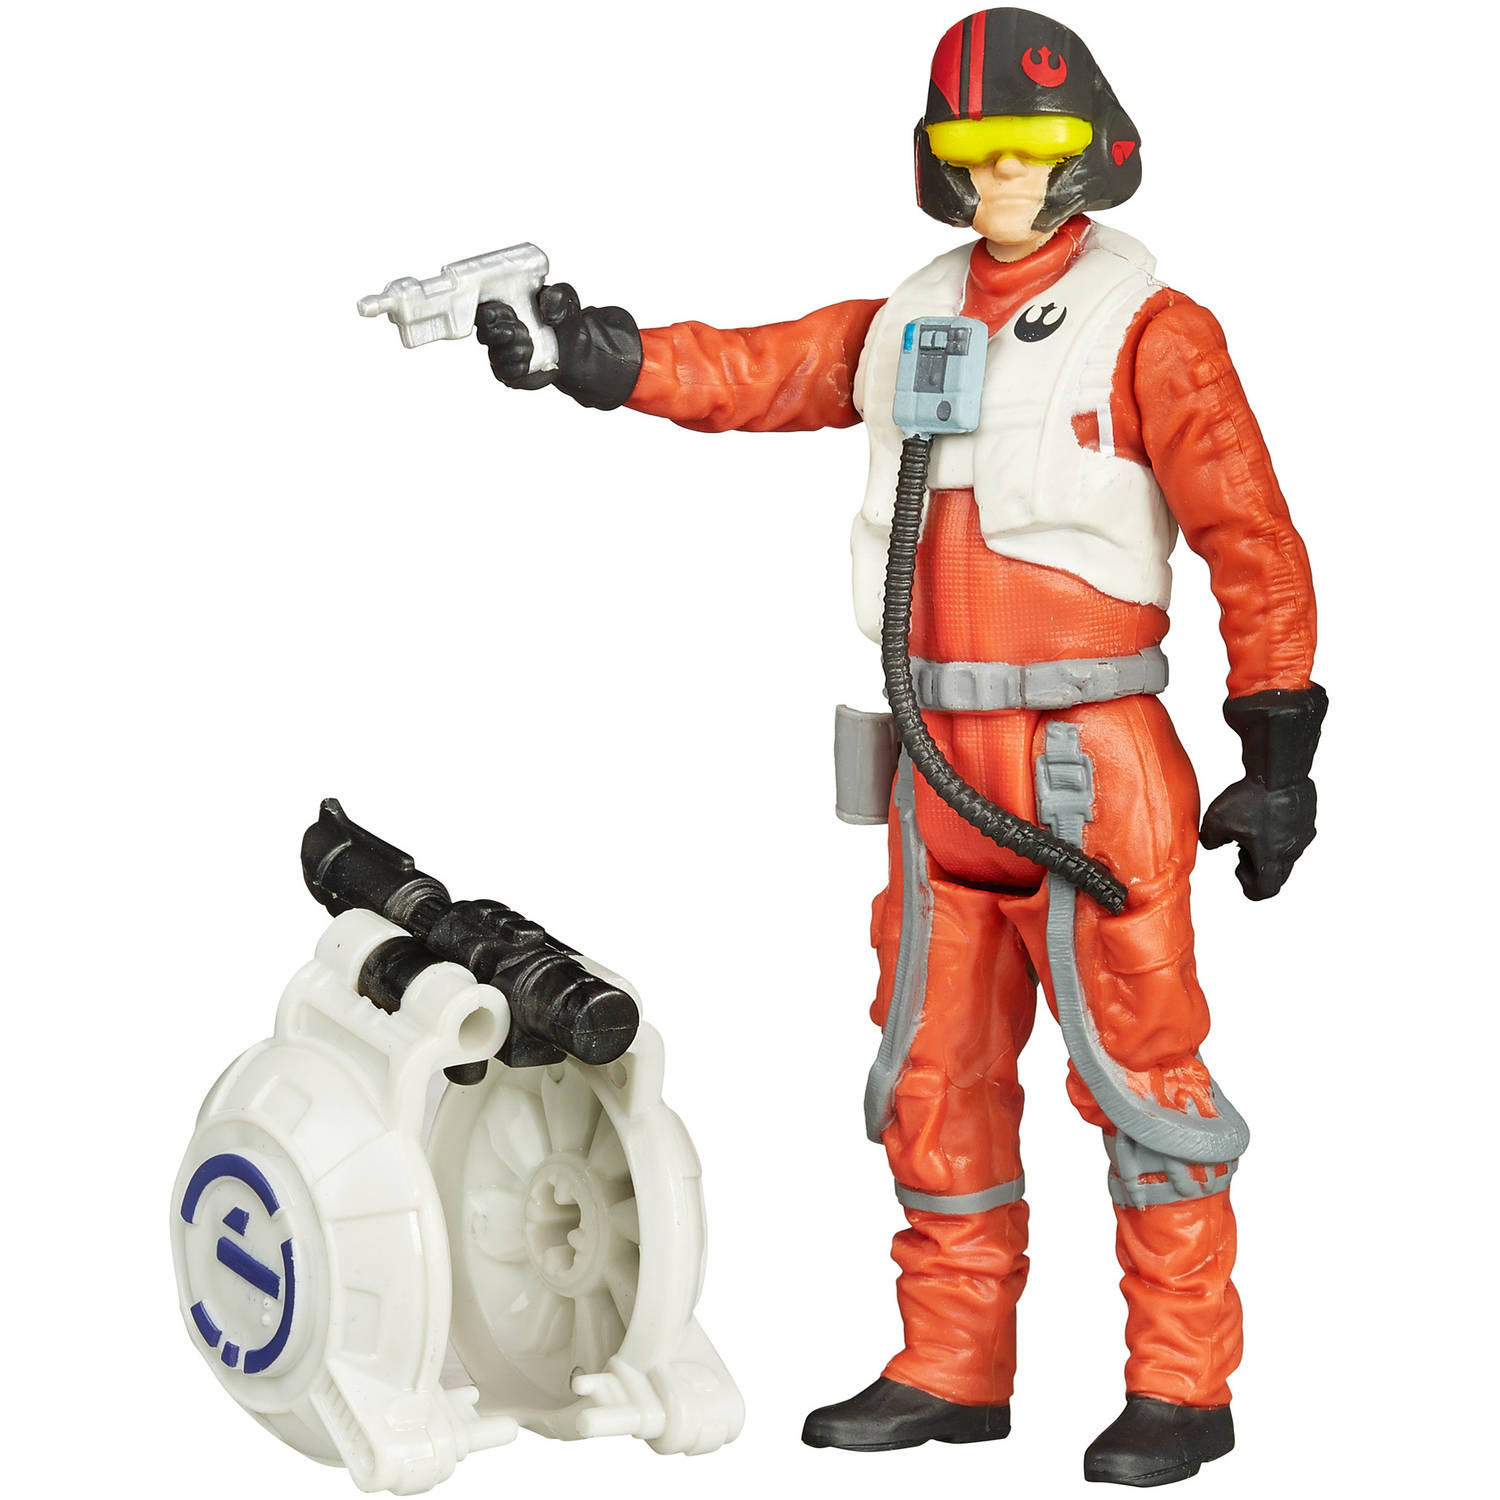 """Star Wars The Force Awakens 3.75"""" Figure Space Mission Poe Dameron by Hasbro"""